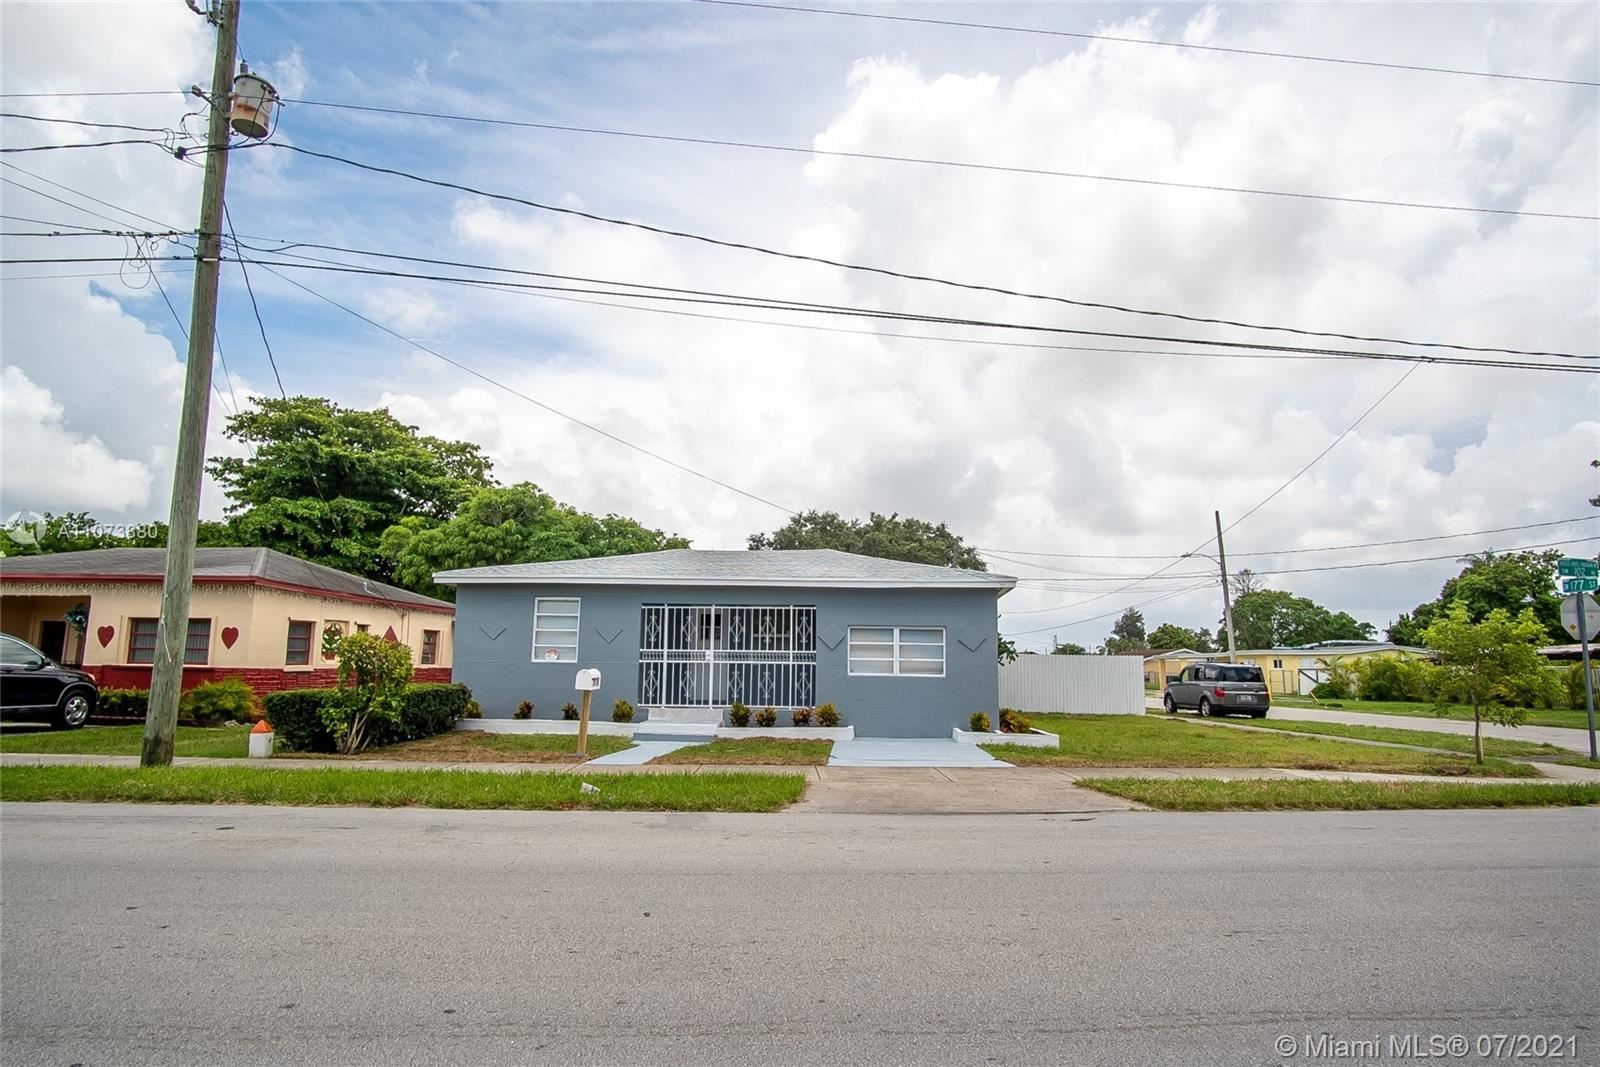 17710 SW 102nd Ave, West Perrine, FL 33157 - #: A11073880